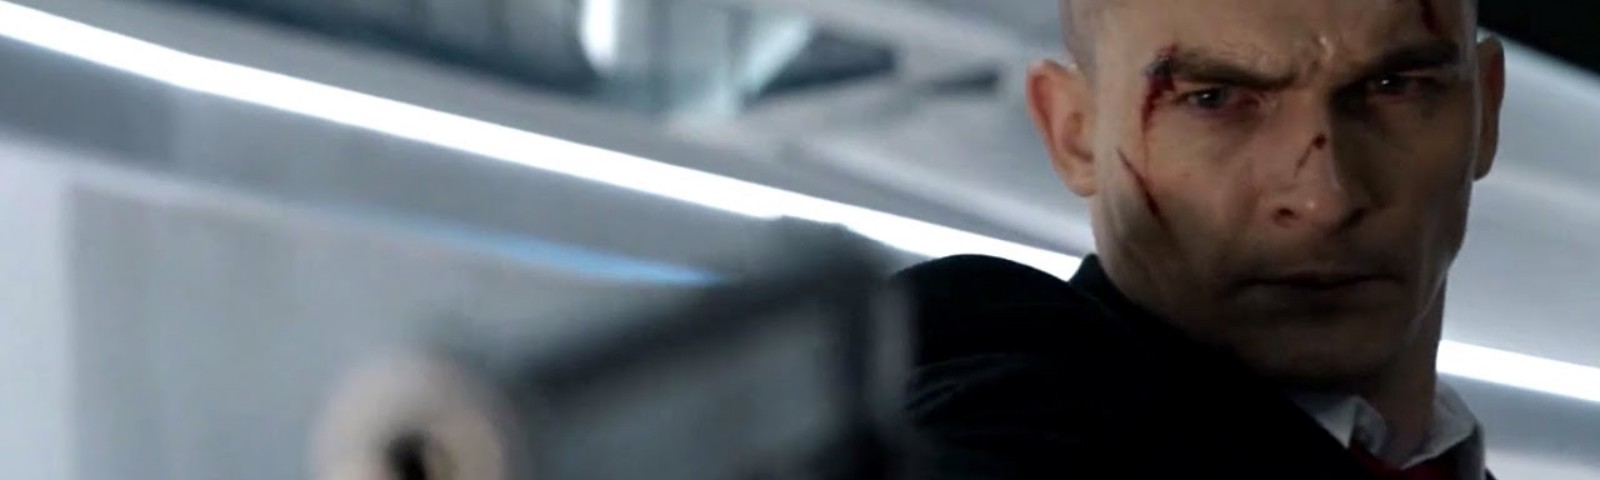 Watch Full Movie Hitman Agent 47 2015 Medium